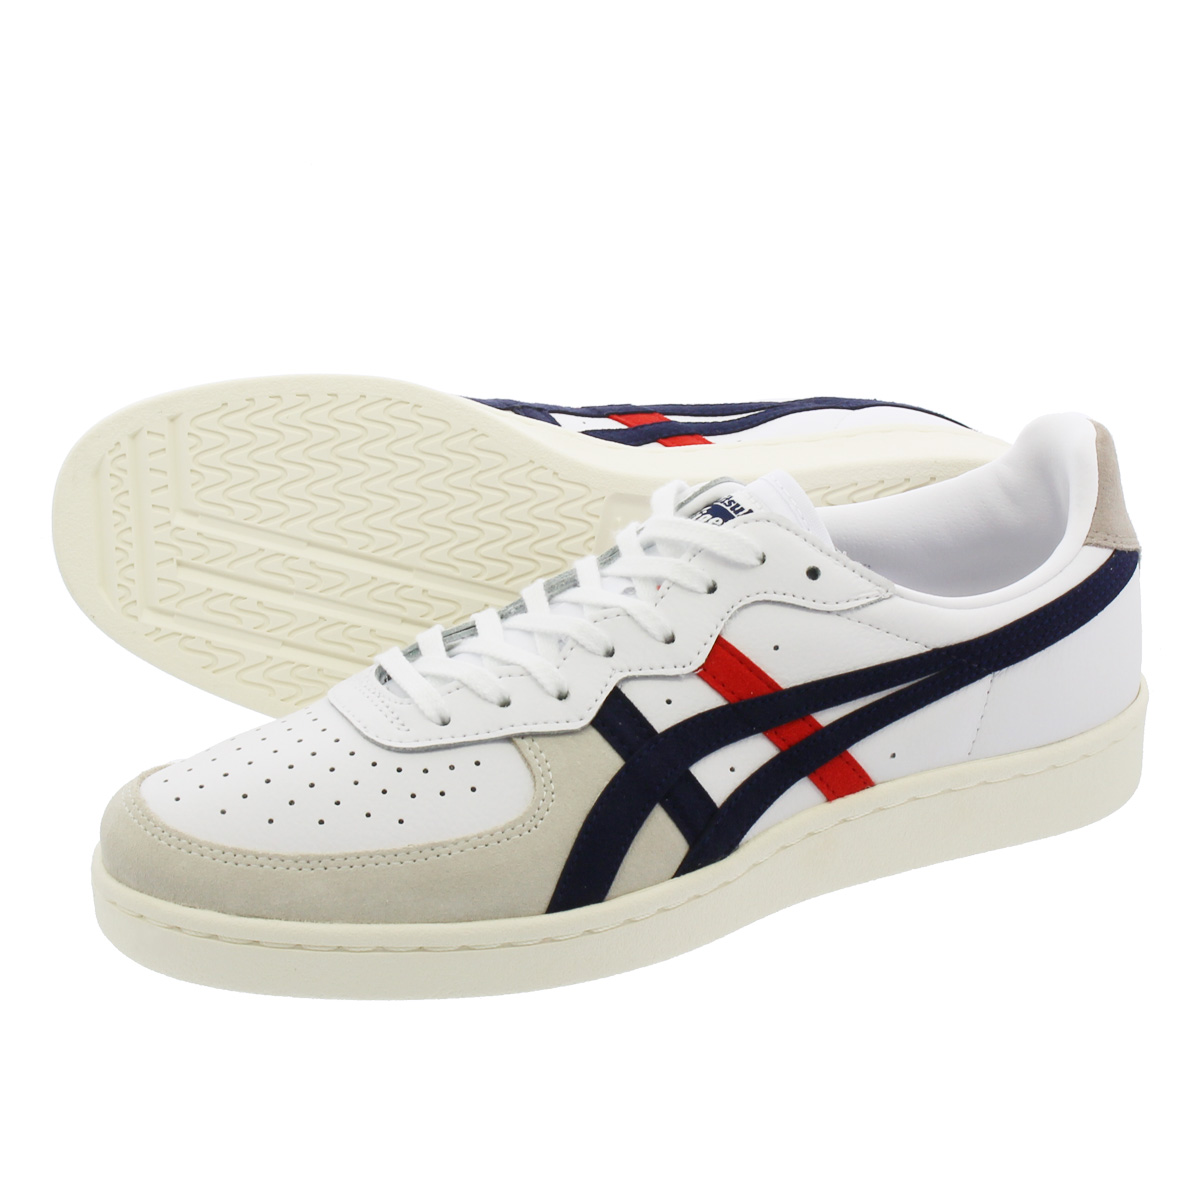 Onitsuka Tiger GSM オニツカタイガー ジーエスエム WHITE/PEACOAT th5k2y-100